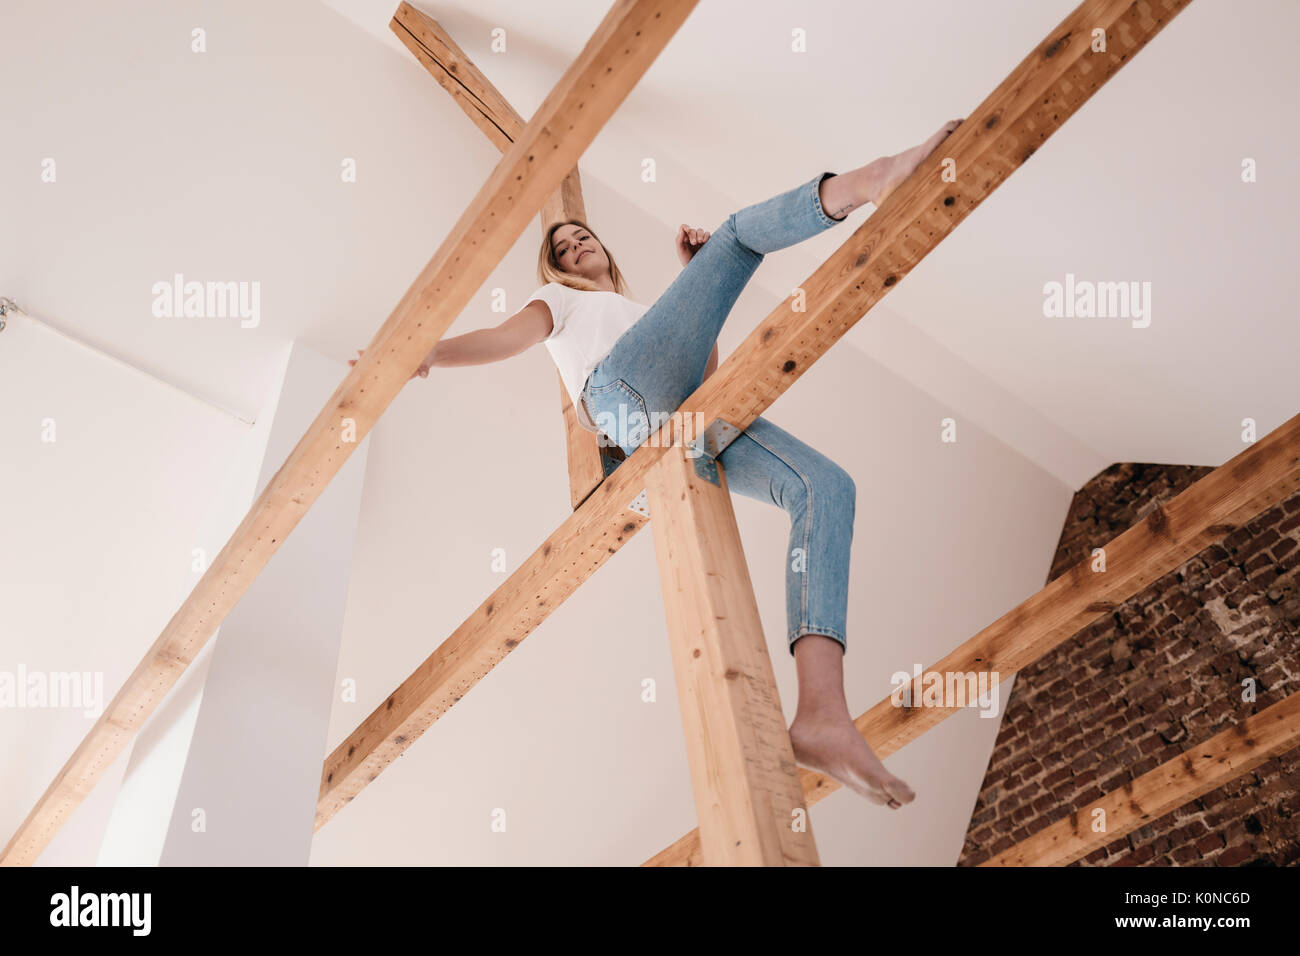 joist stock photos  u0026 joist stock images